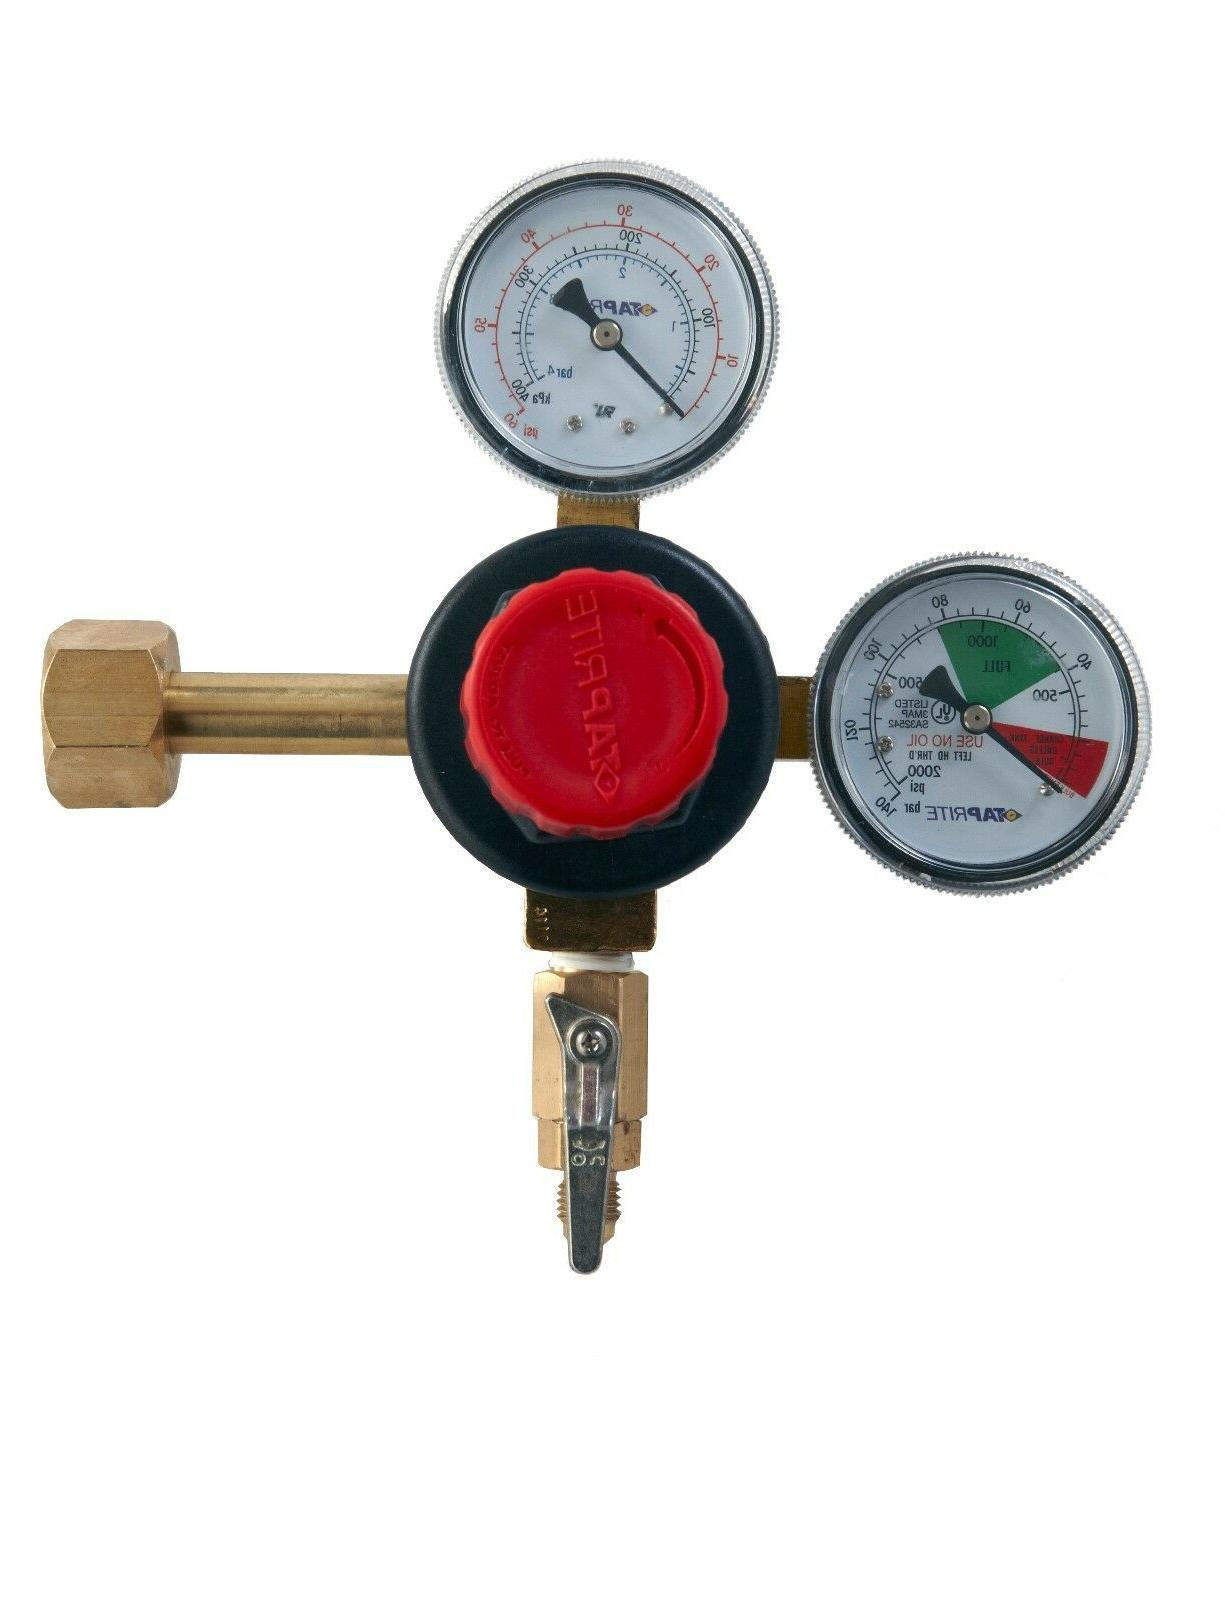 1 X co2 Dual Gauge Regulator High Performance